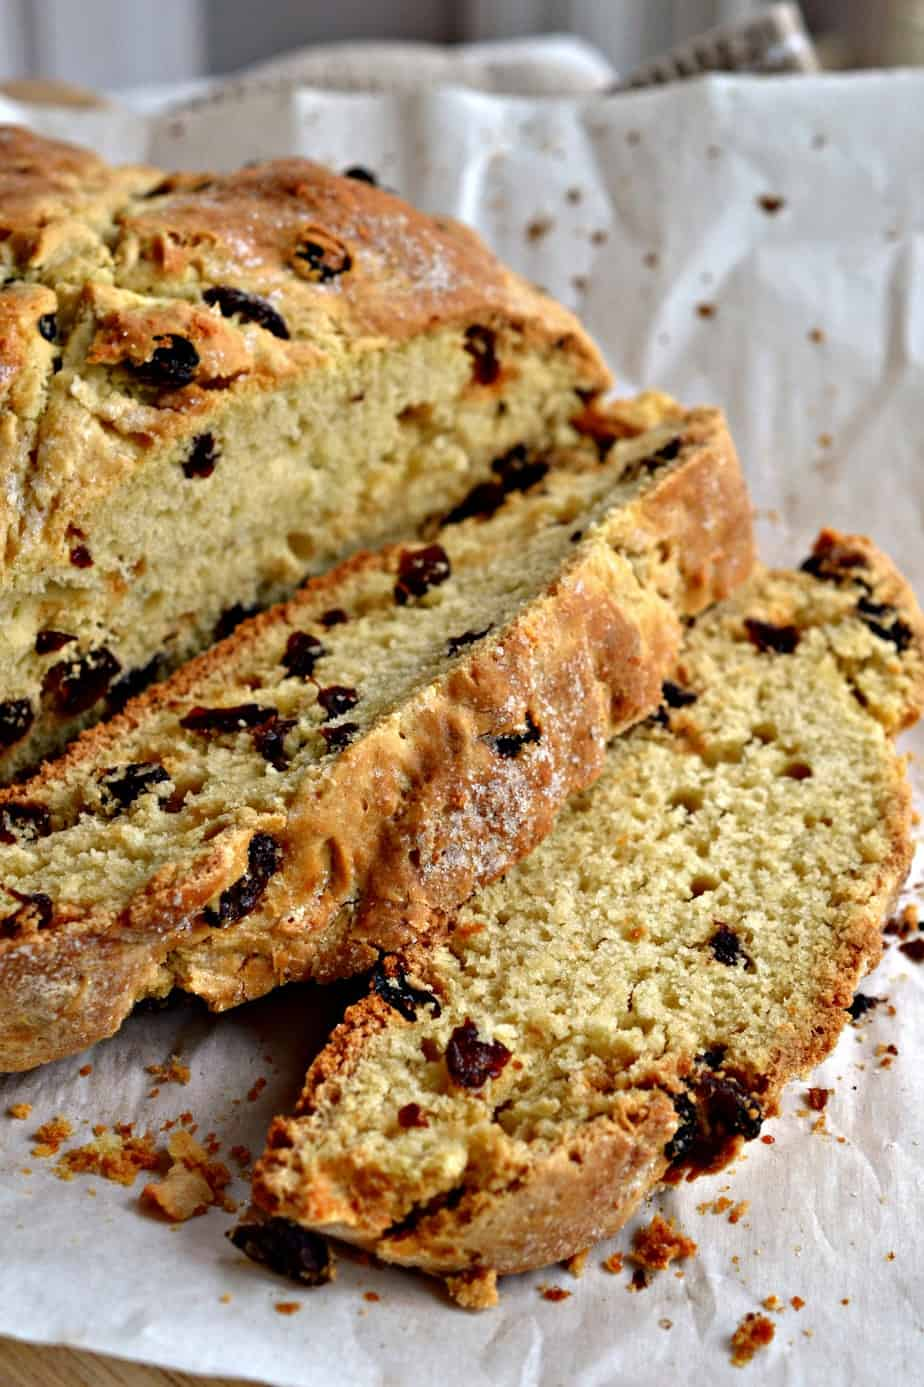 This fun easy Irish Soda Bread is prepped in under ten minutes.  It has a crispy crust with a soft sweet cake like center.